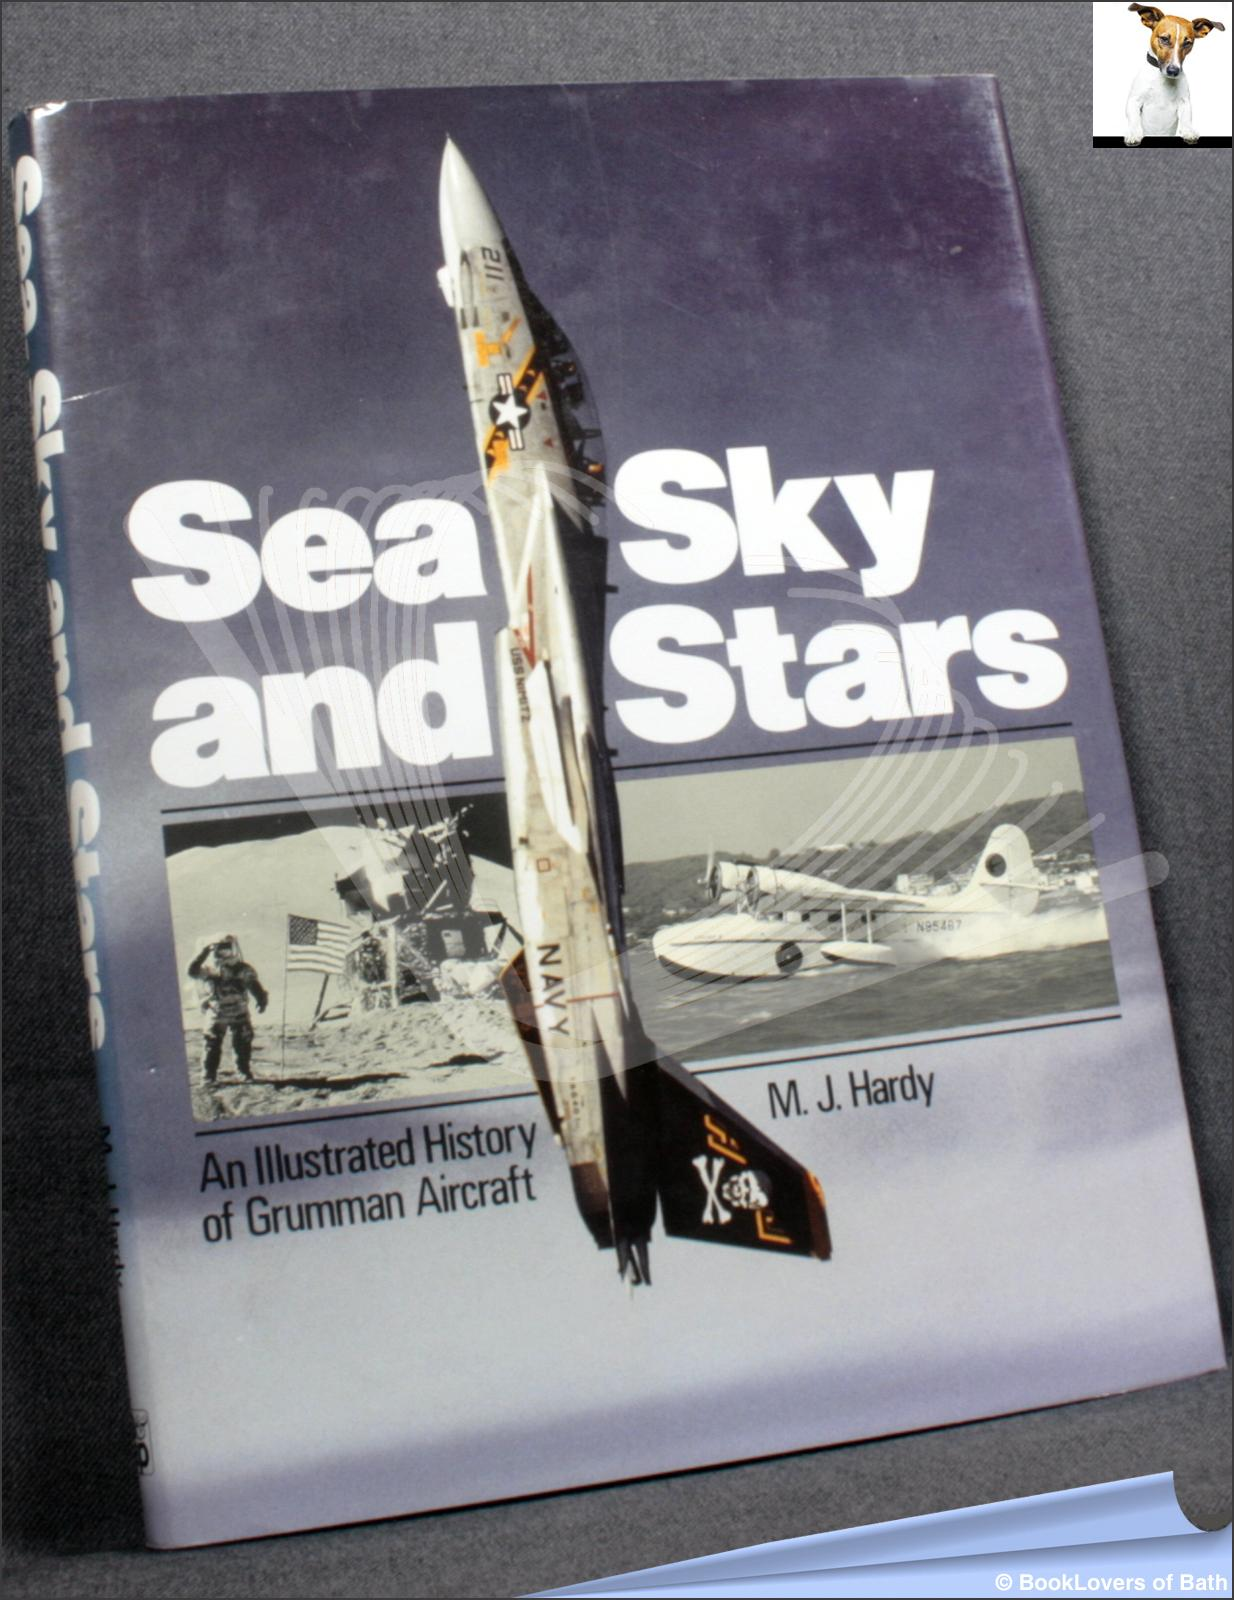 Sea, Sky and Stars: An Illustrated History of Grumman Aircraft - M. J. Hardy